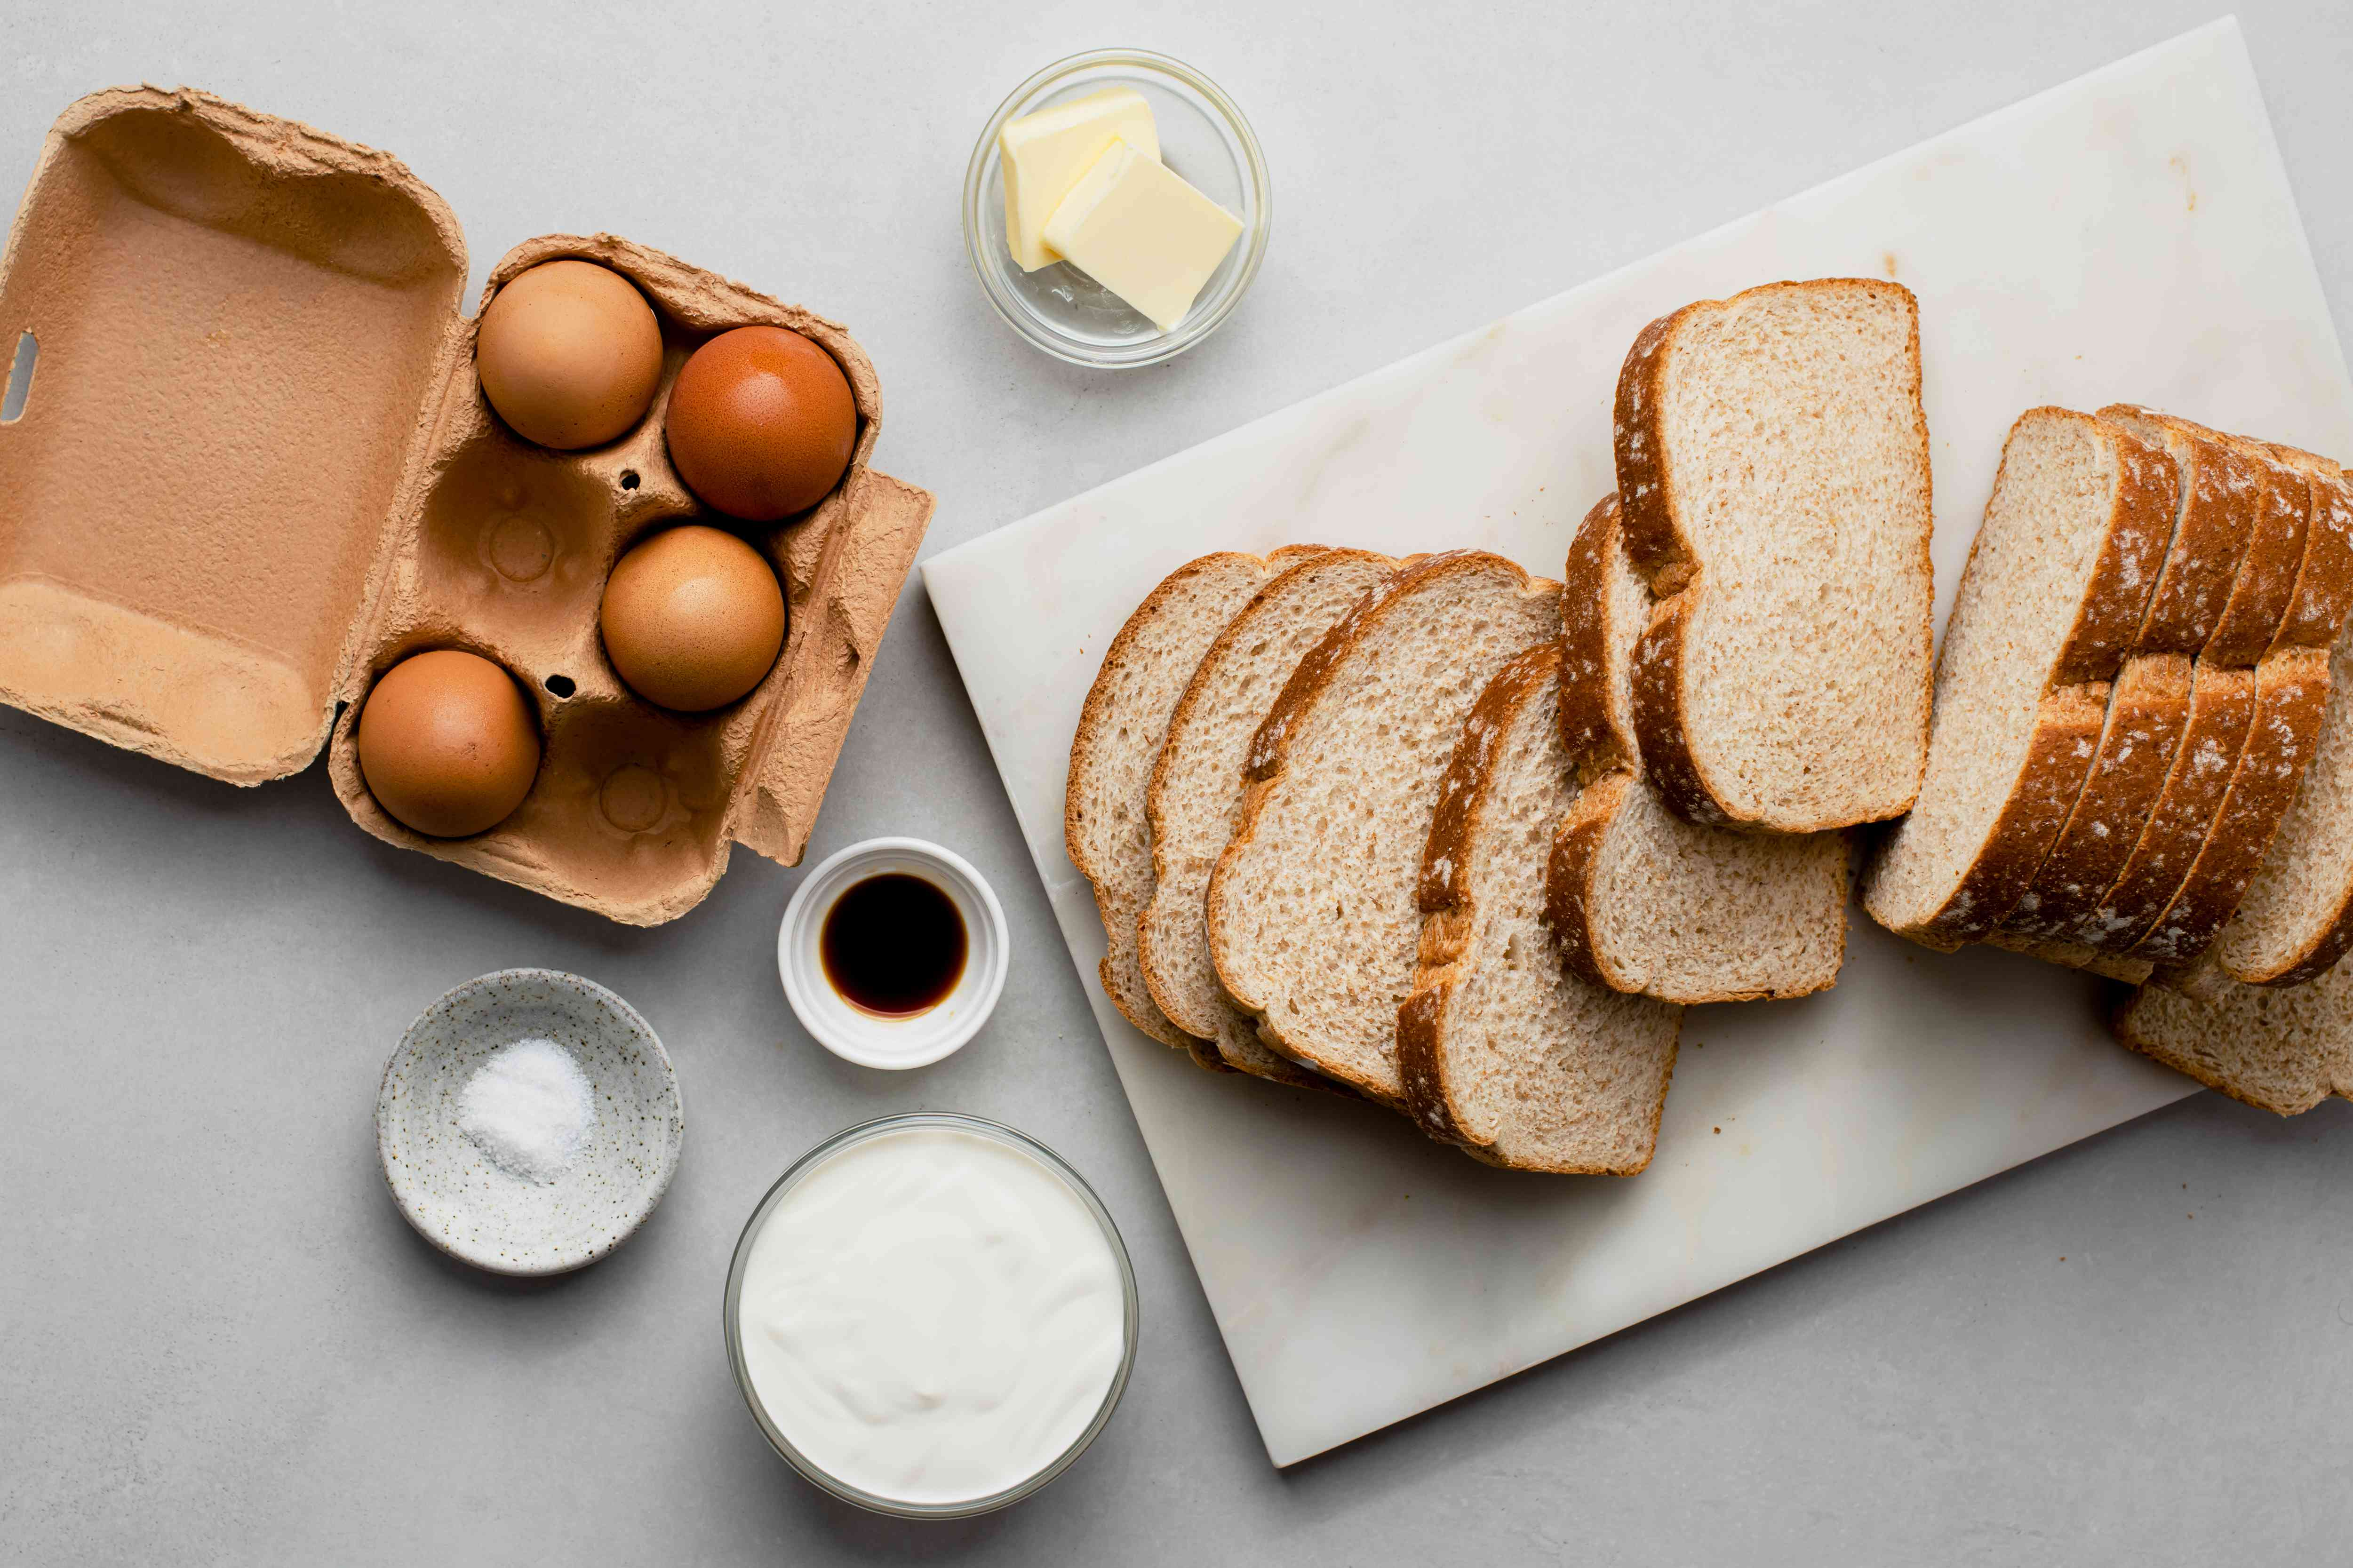 Skillet French Toast ingredients